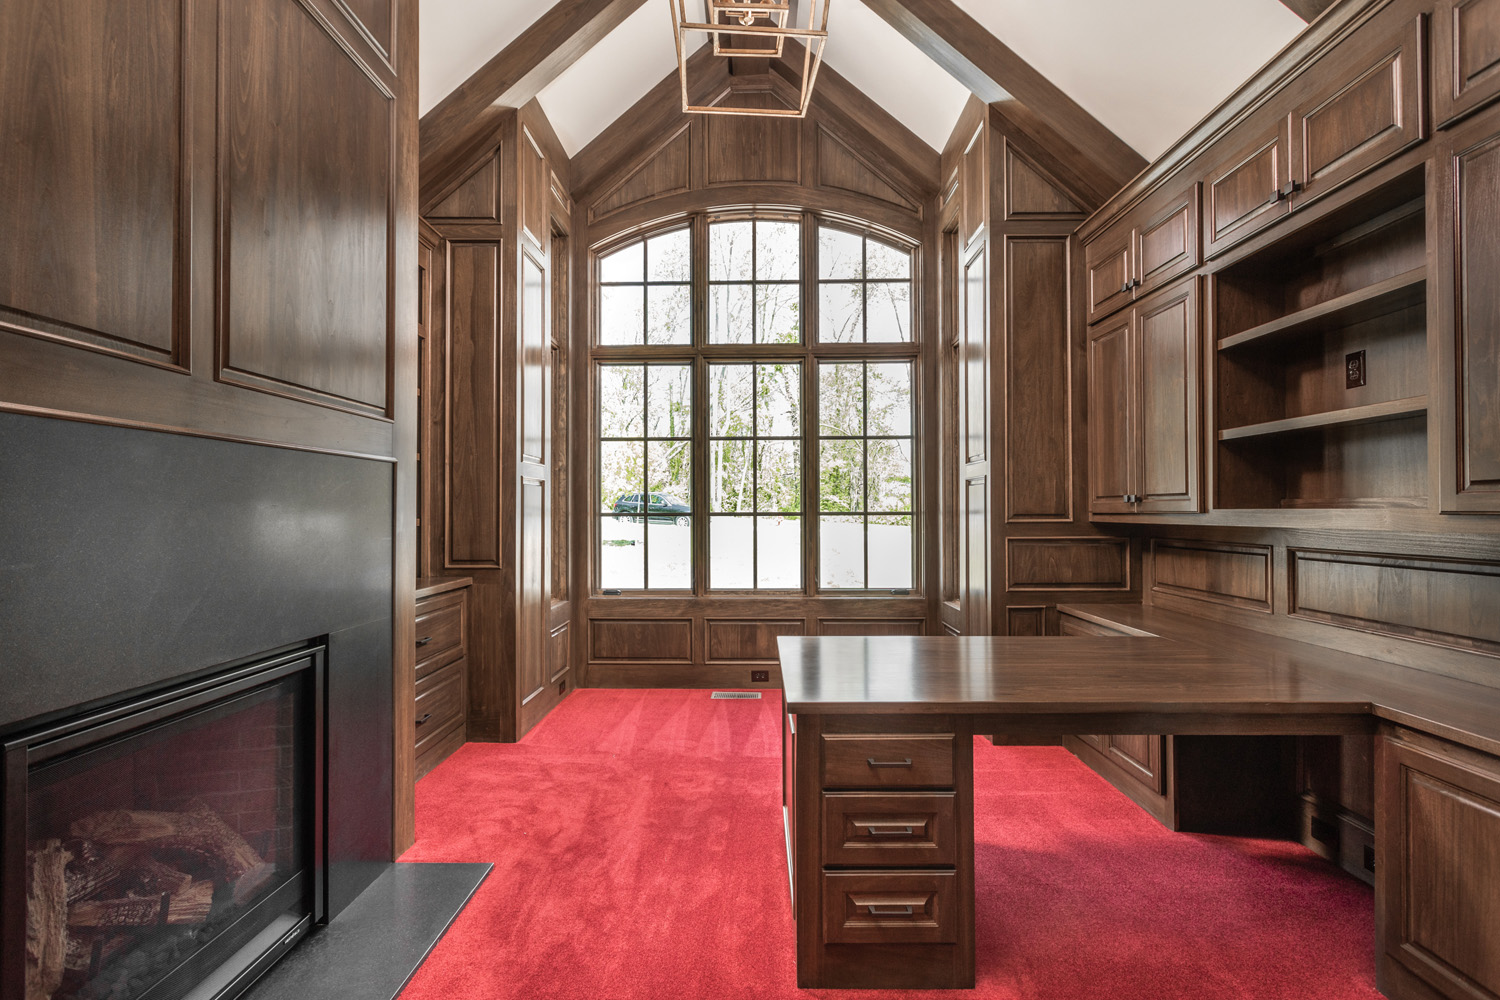 office inside custom home with red carpet, natural sunlight, desk, and carpentry work